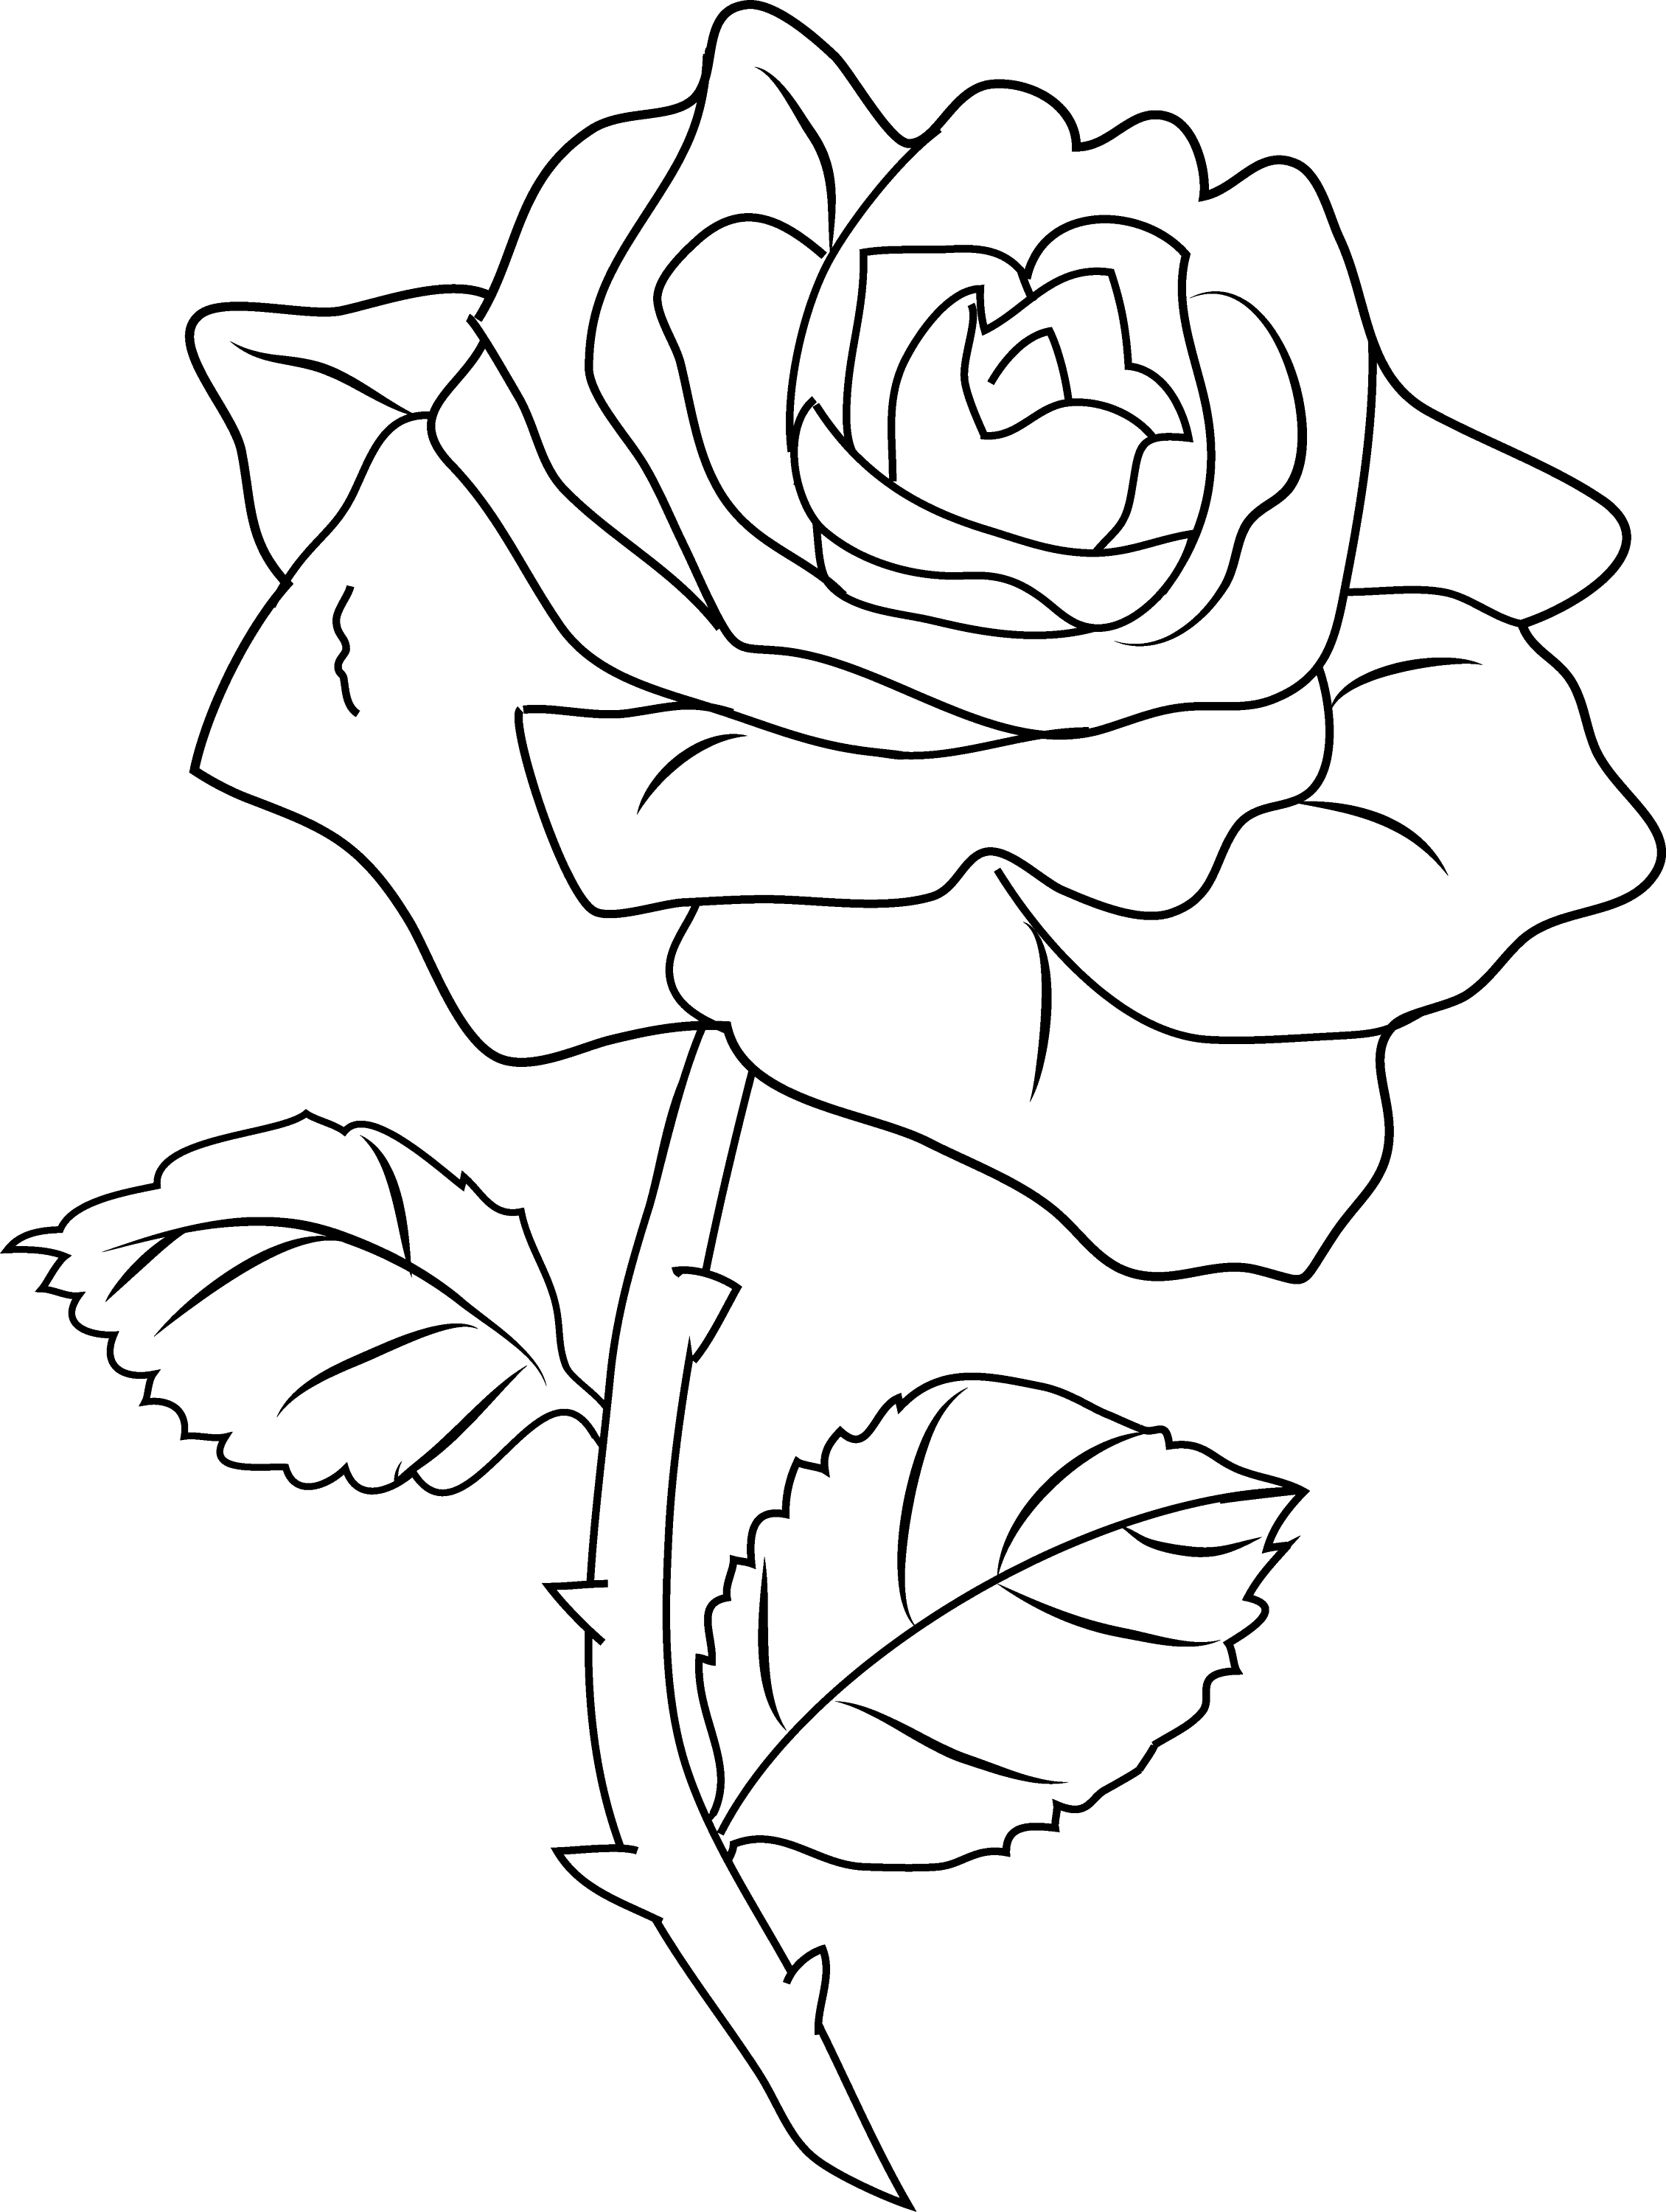 free printable rose coloring pages rose coloring pages free download on clipartmag rose printable coloring free pages